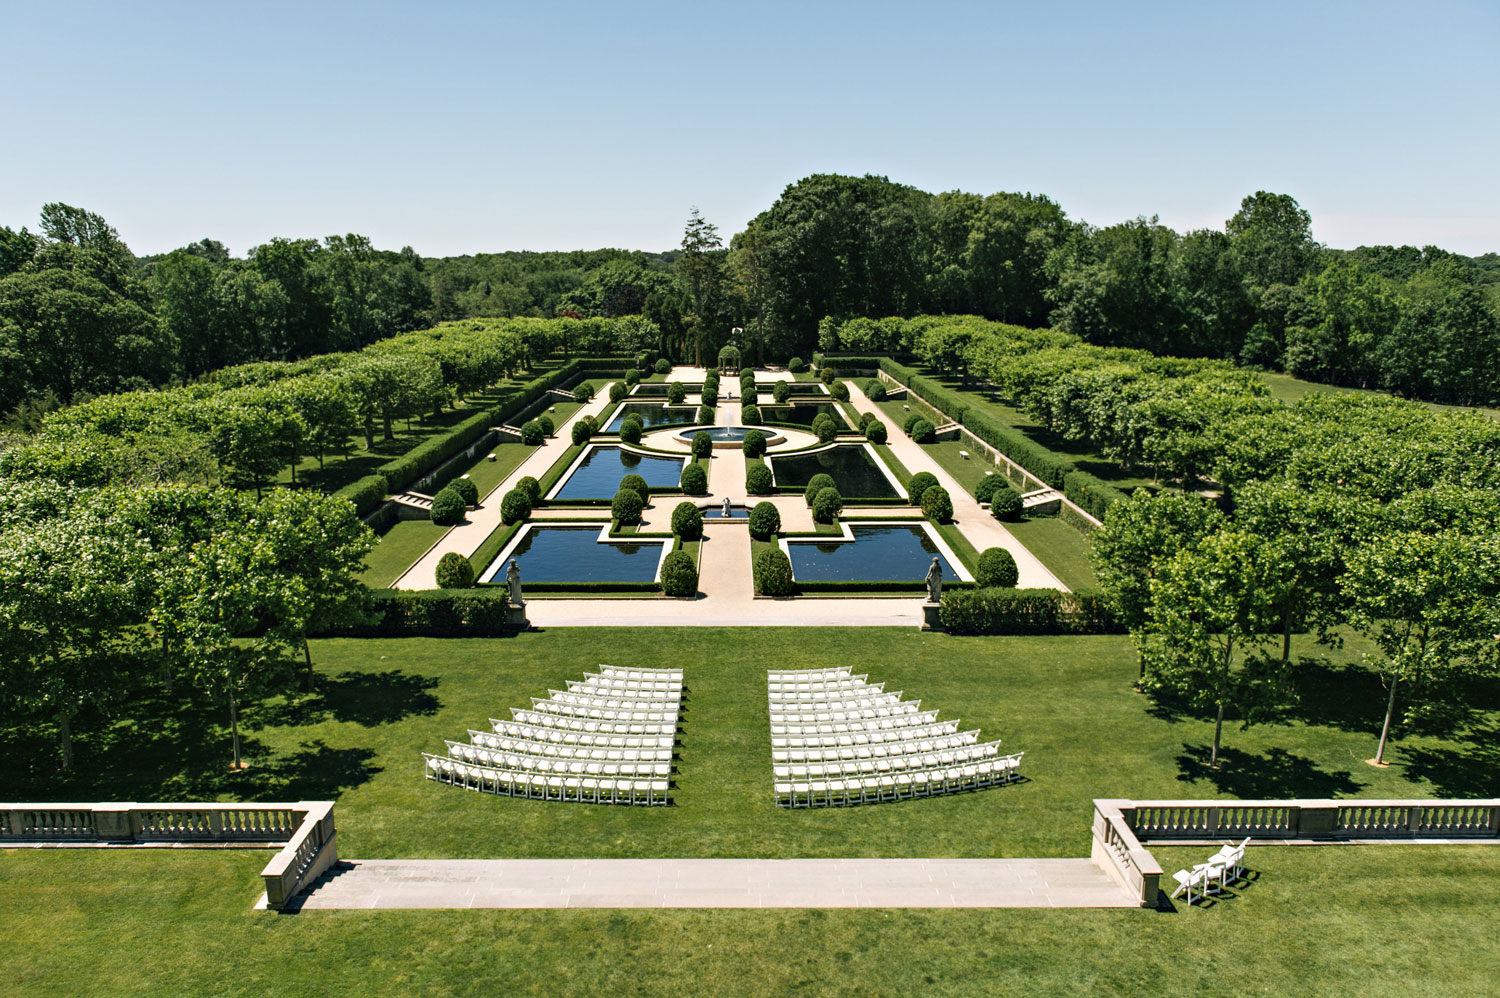 Ceremony set up on grounds of oheka castle castle wedding venue ideas